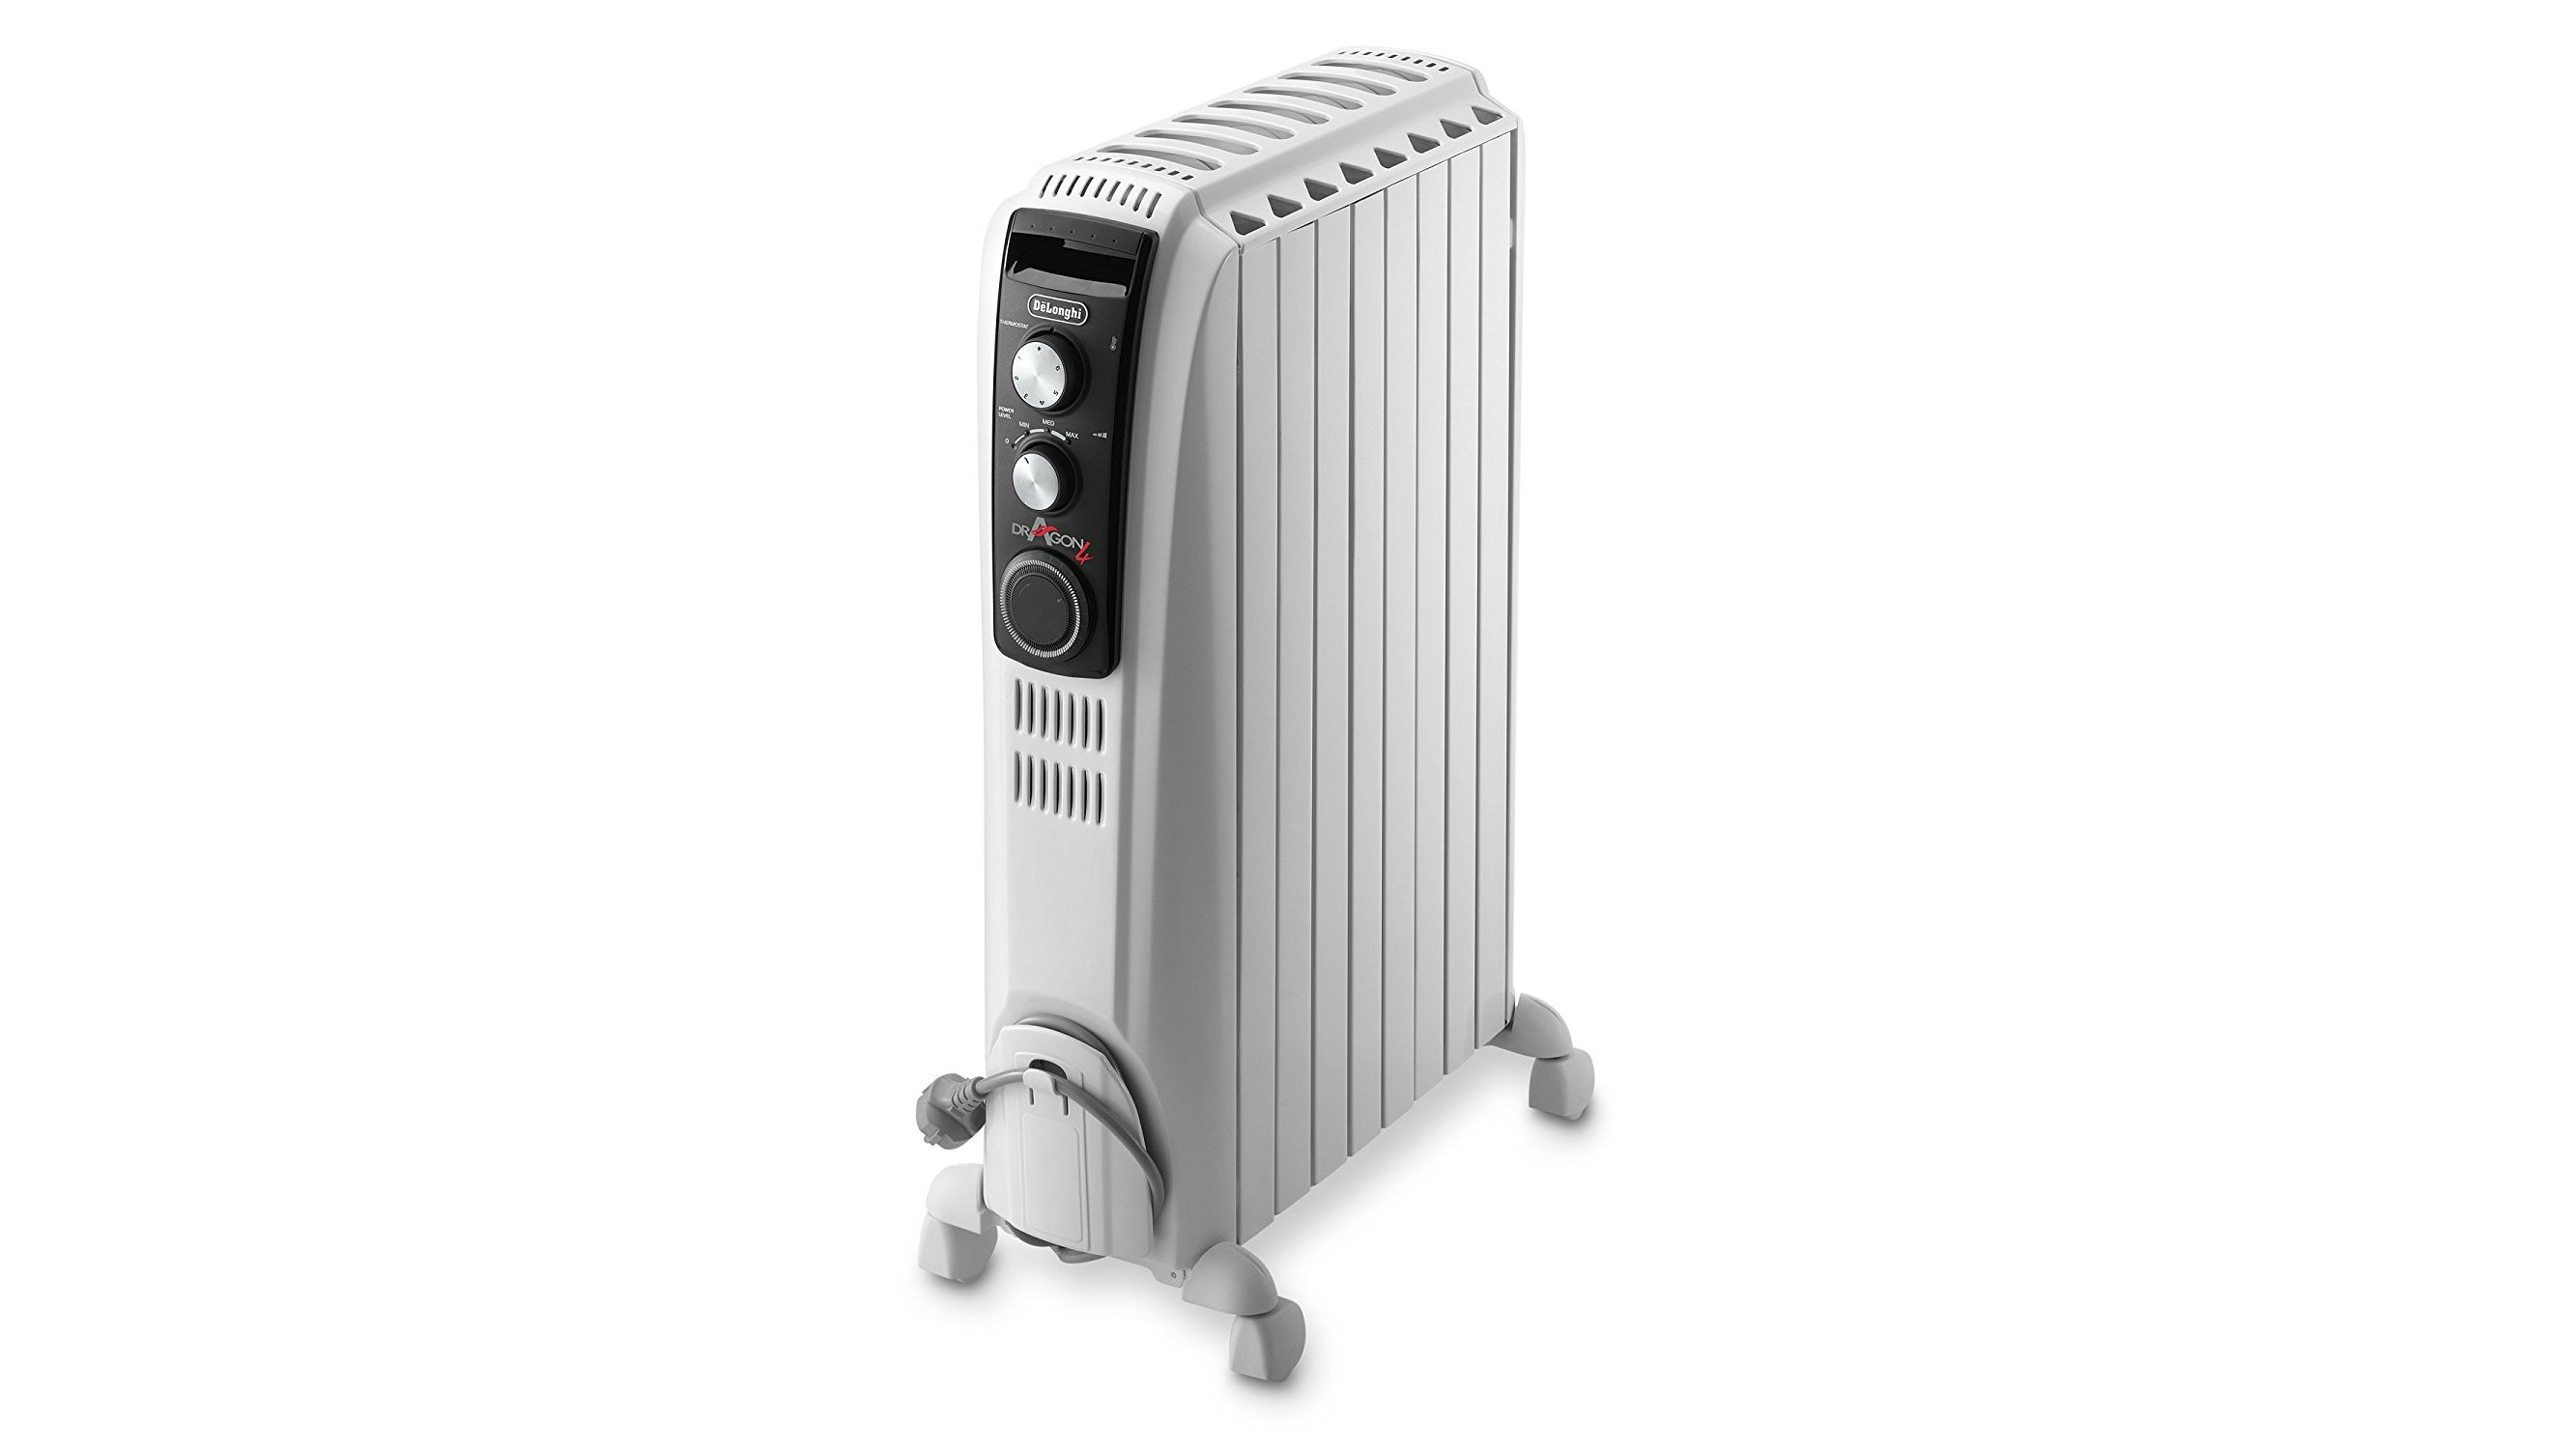 62bb66b6ddd There are other oil-filled and non-oil radiators with fancy high-tech  features